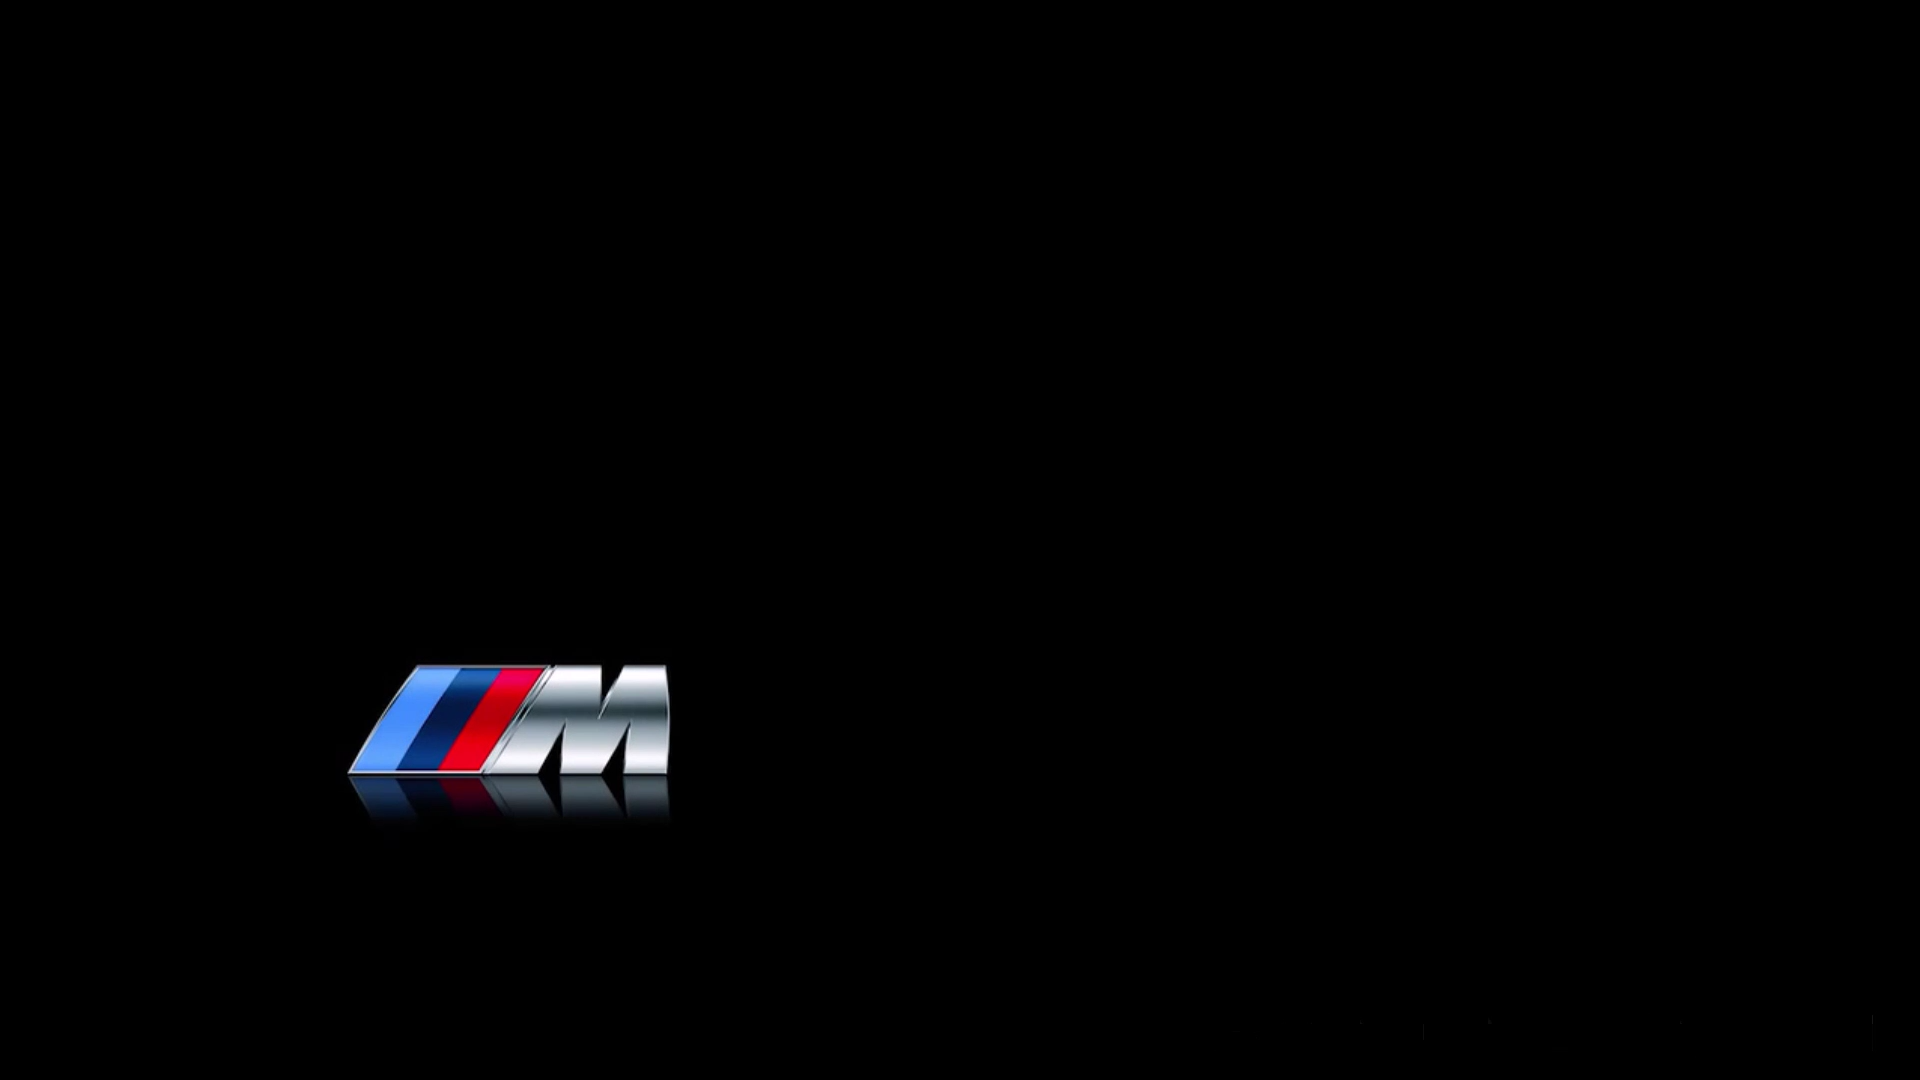 M Logo Wallpaper Mobile BMW HD Wallpapers for ...